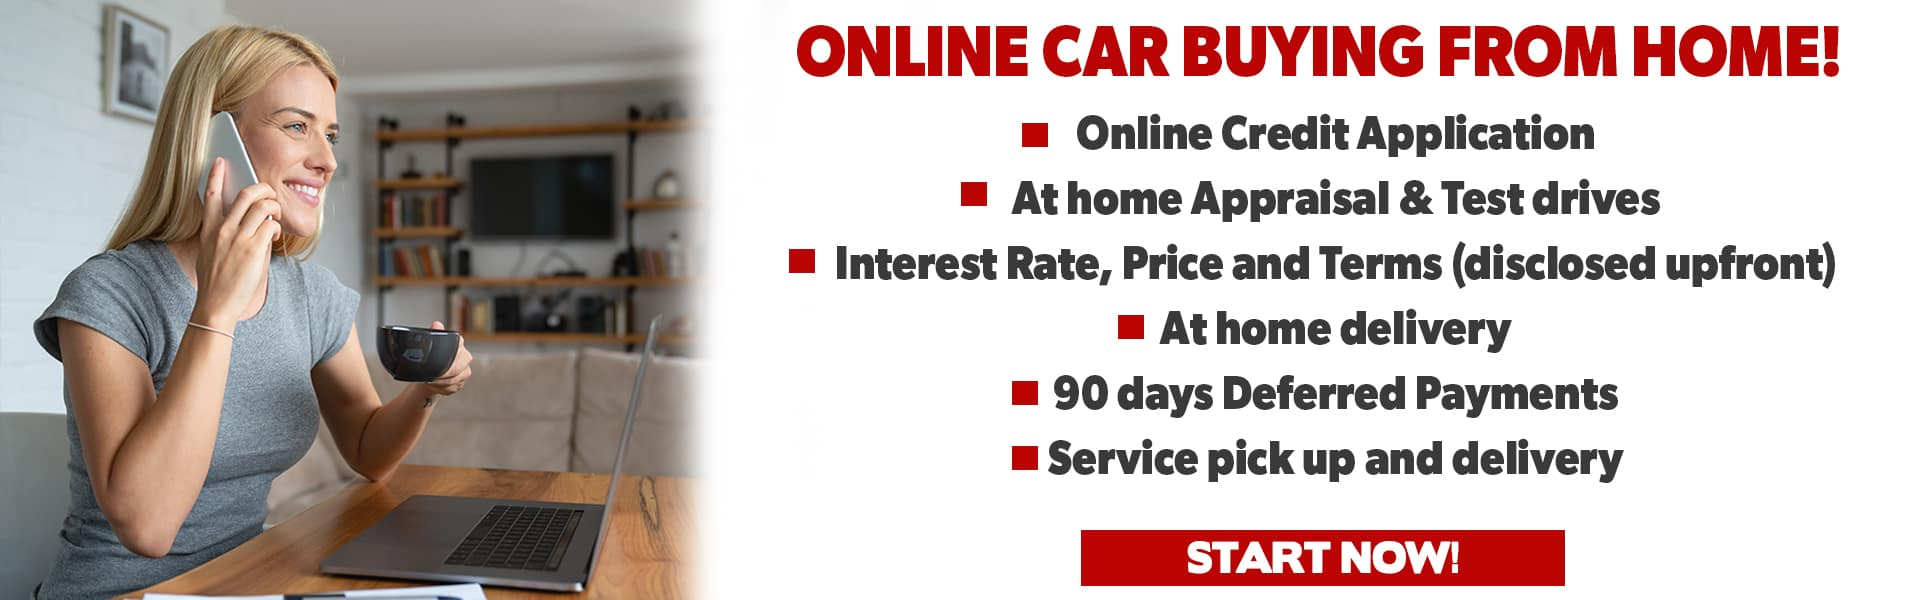 Online Car Buying at Home from Steven Toyota